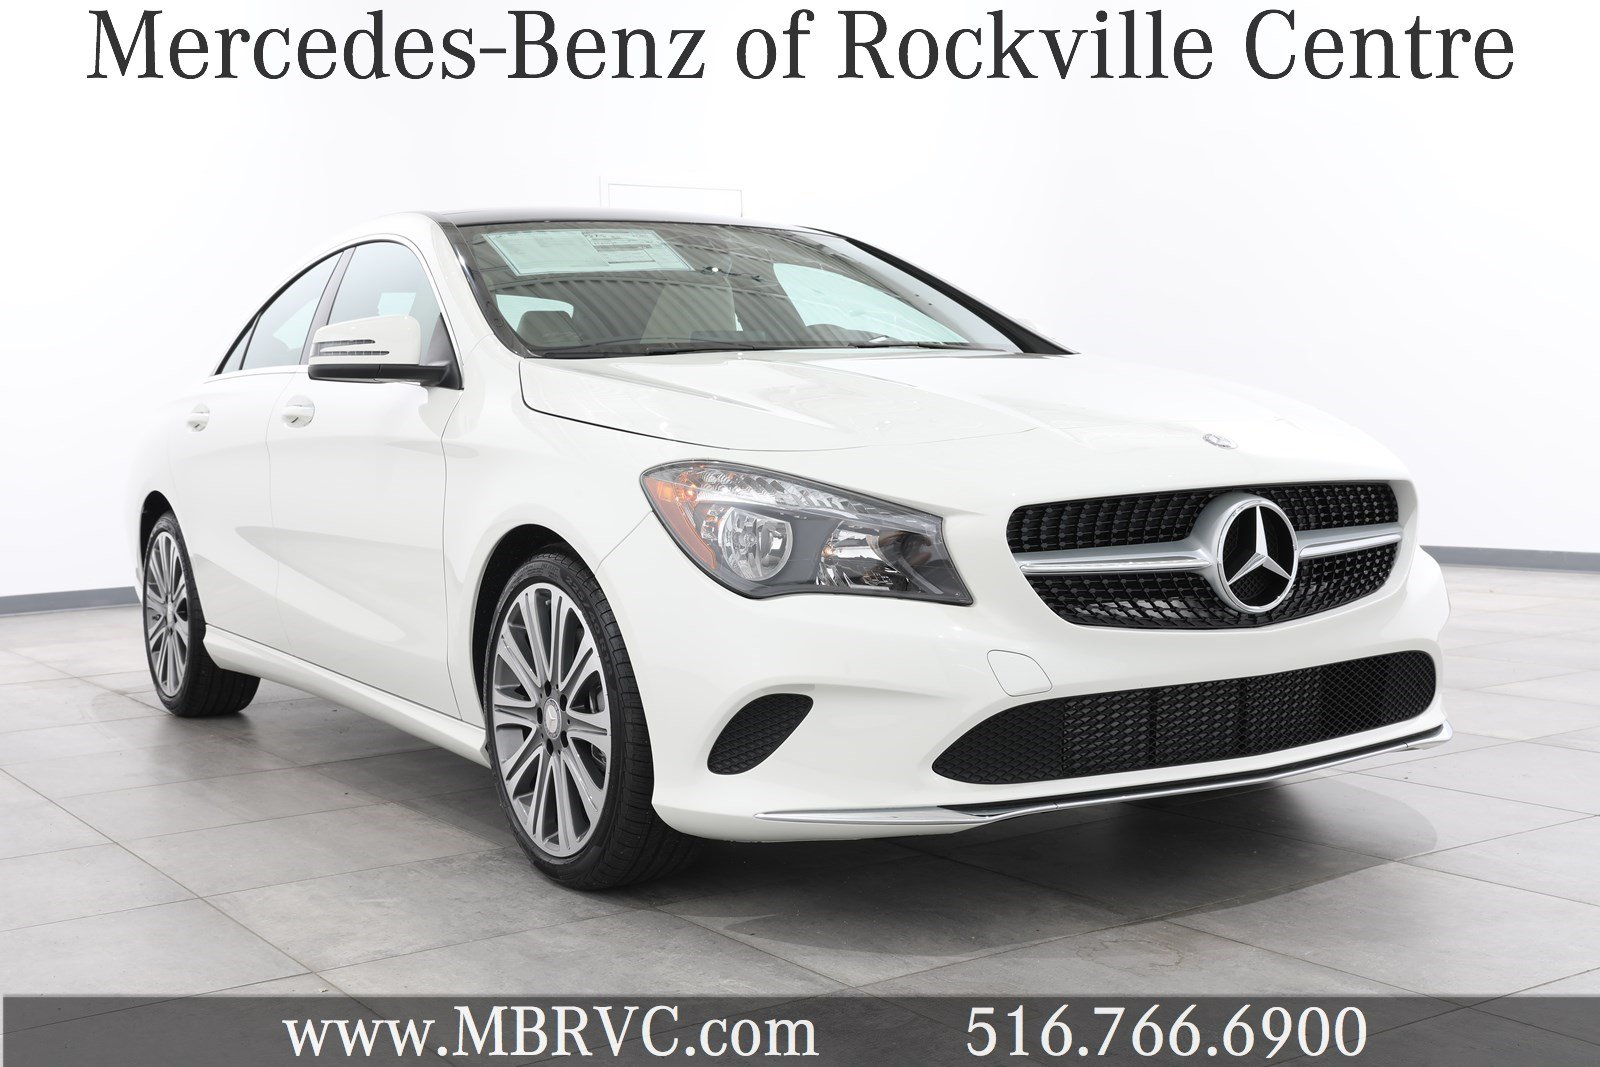 New cla coupe mercedes benz of rockville centre serving for Mercedes benz rockville centre